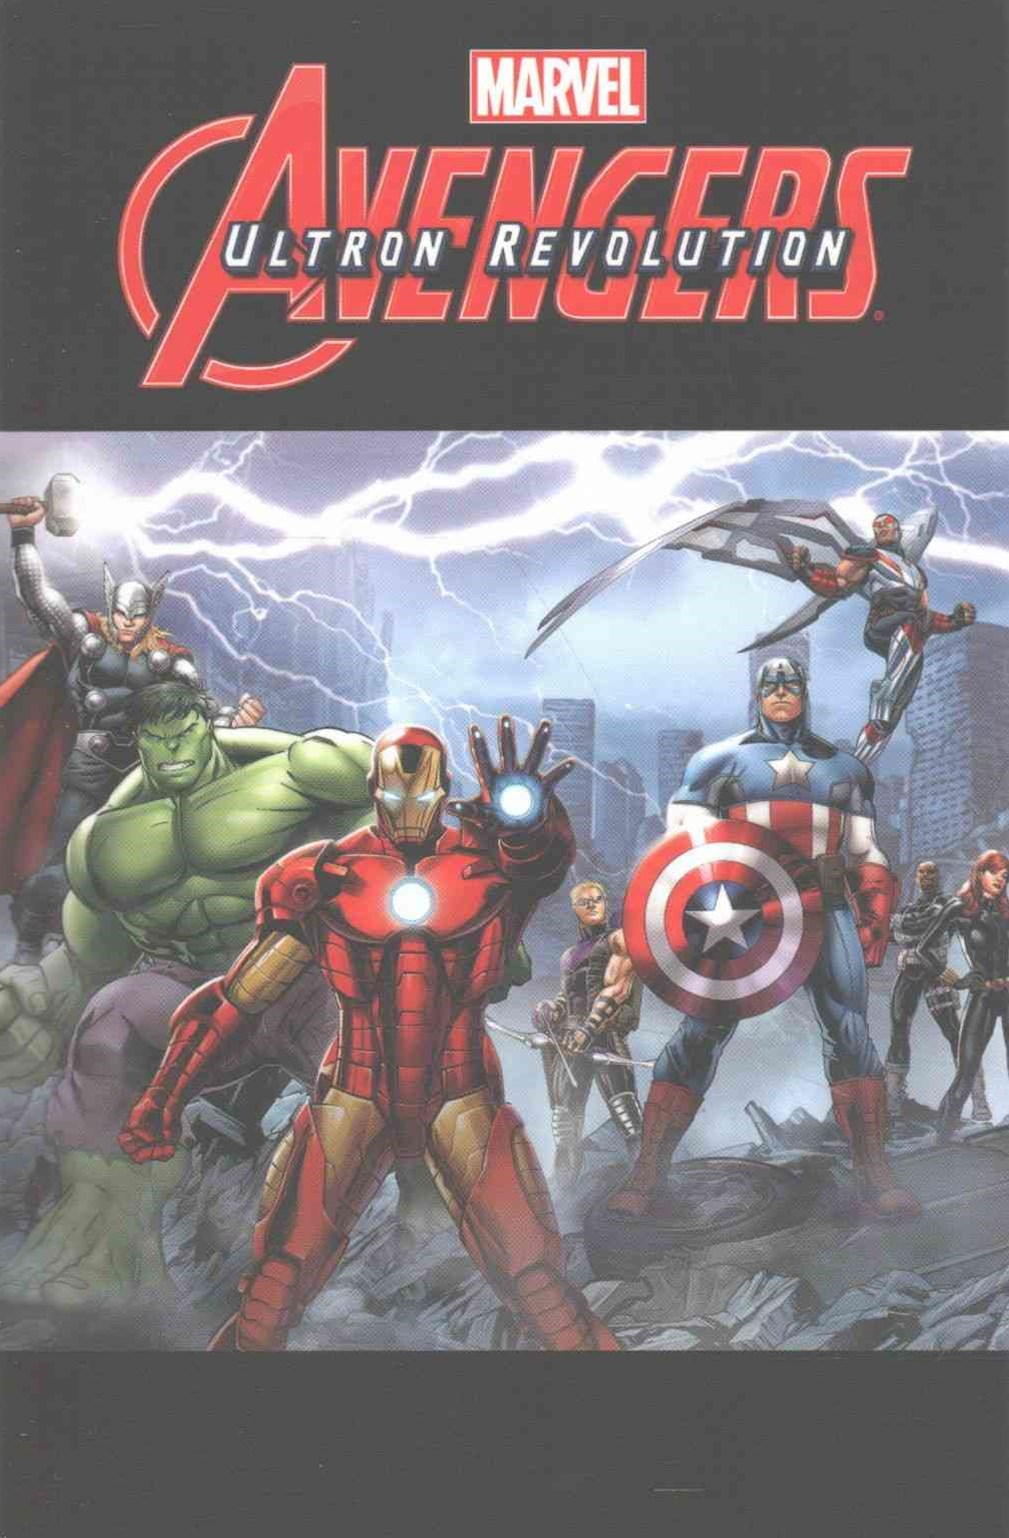 Marvel Universe Avengers: Ultron Revolution Vol. 2